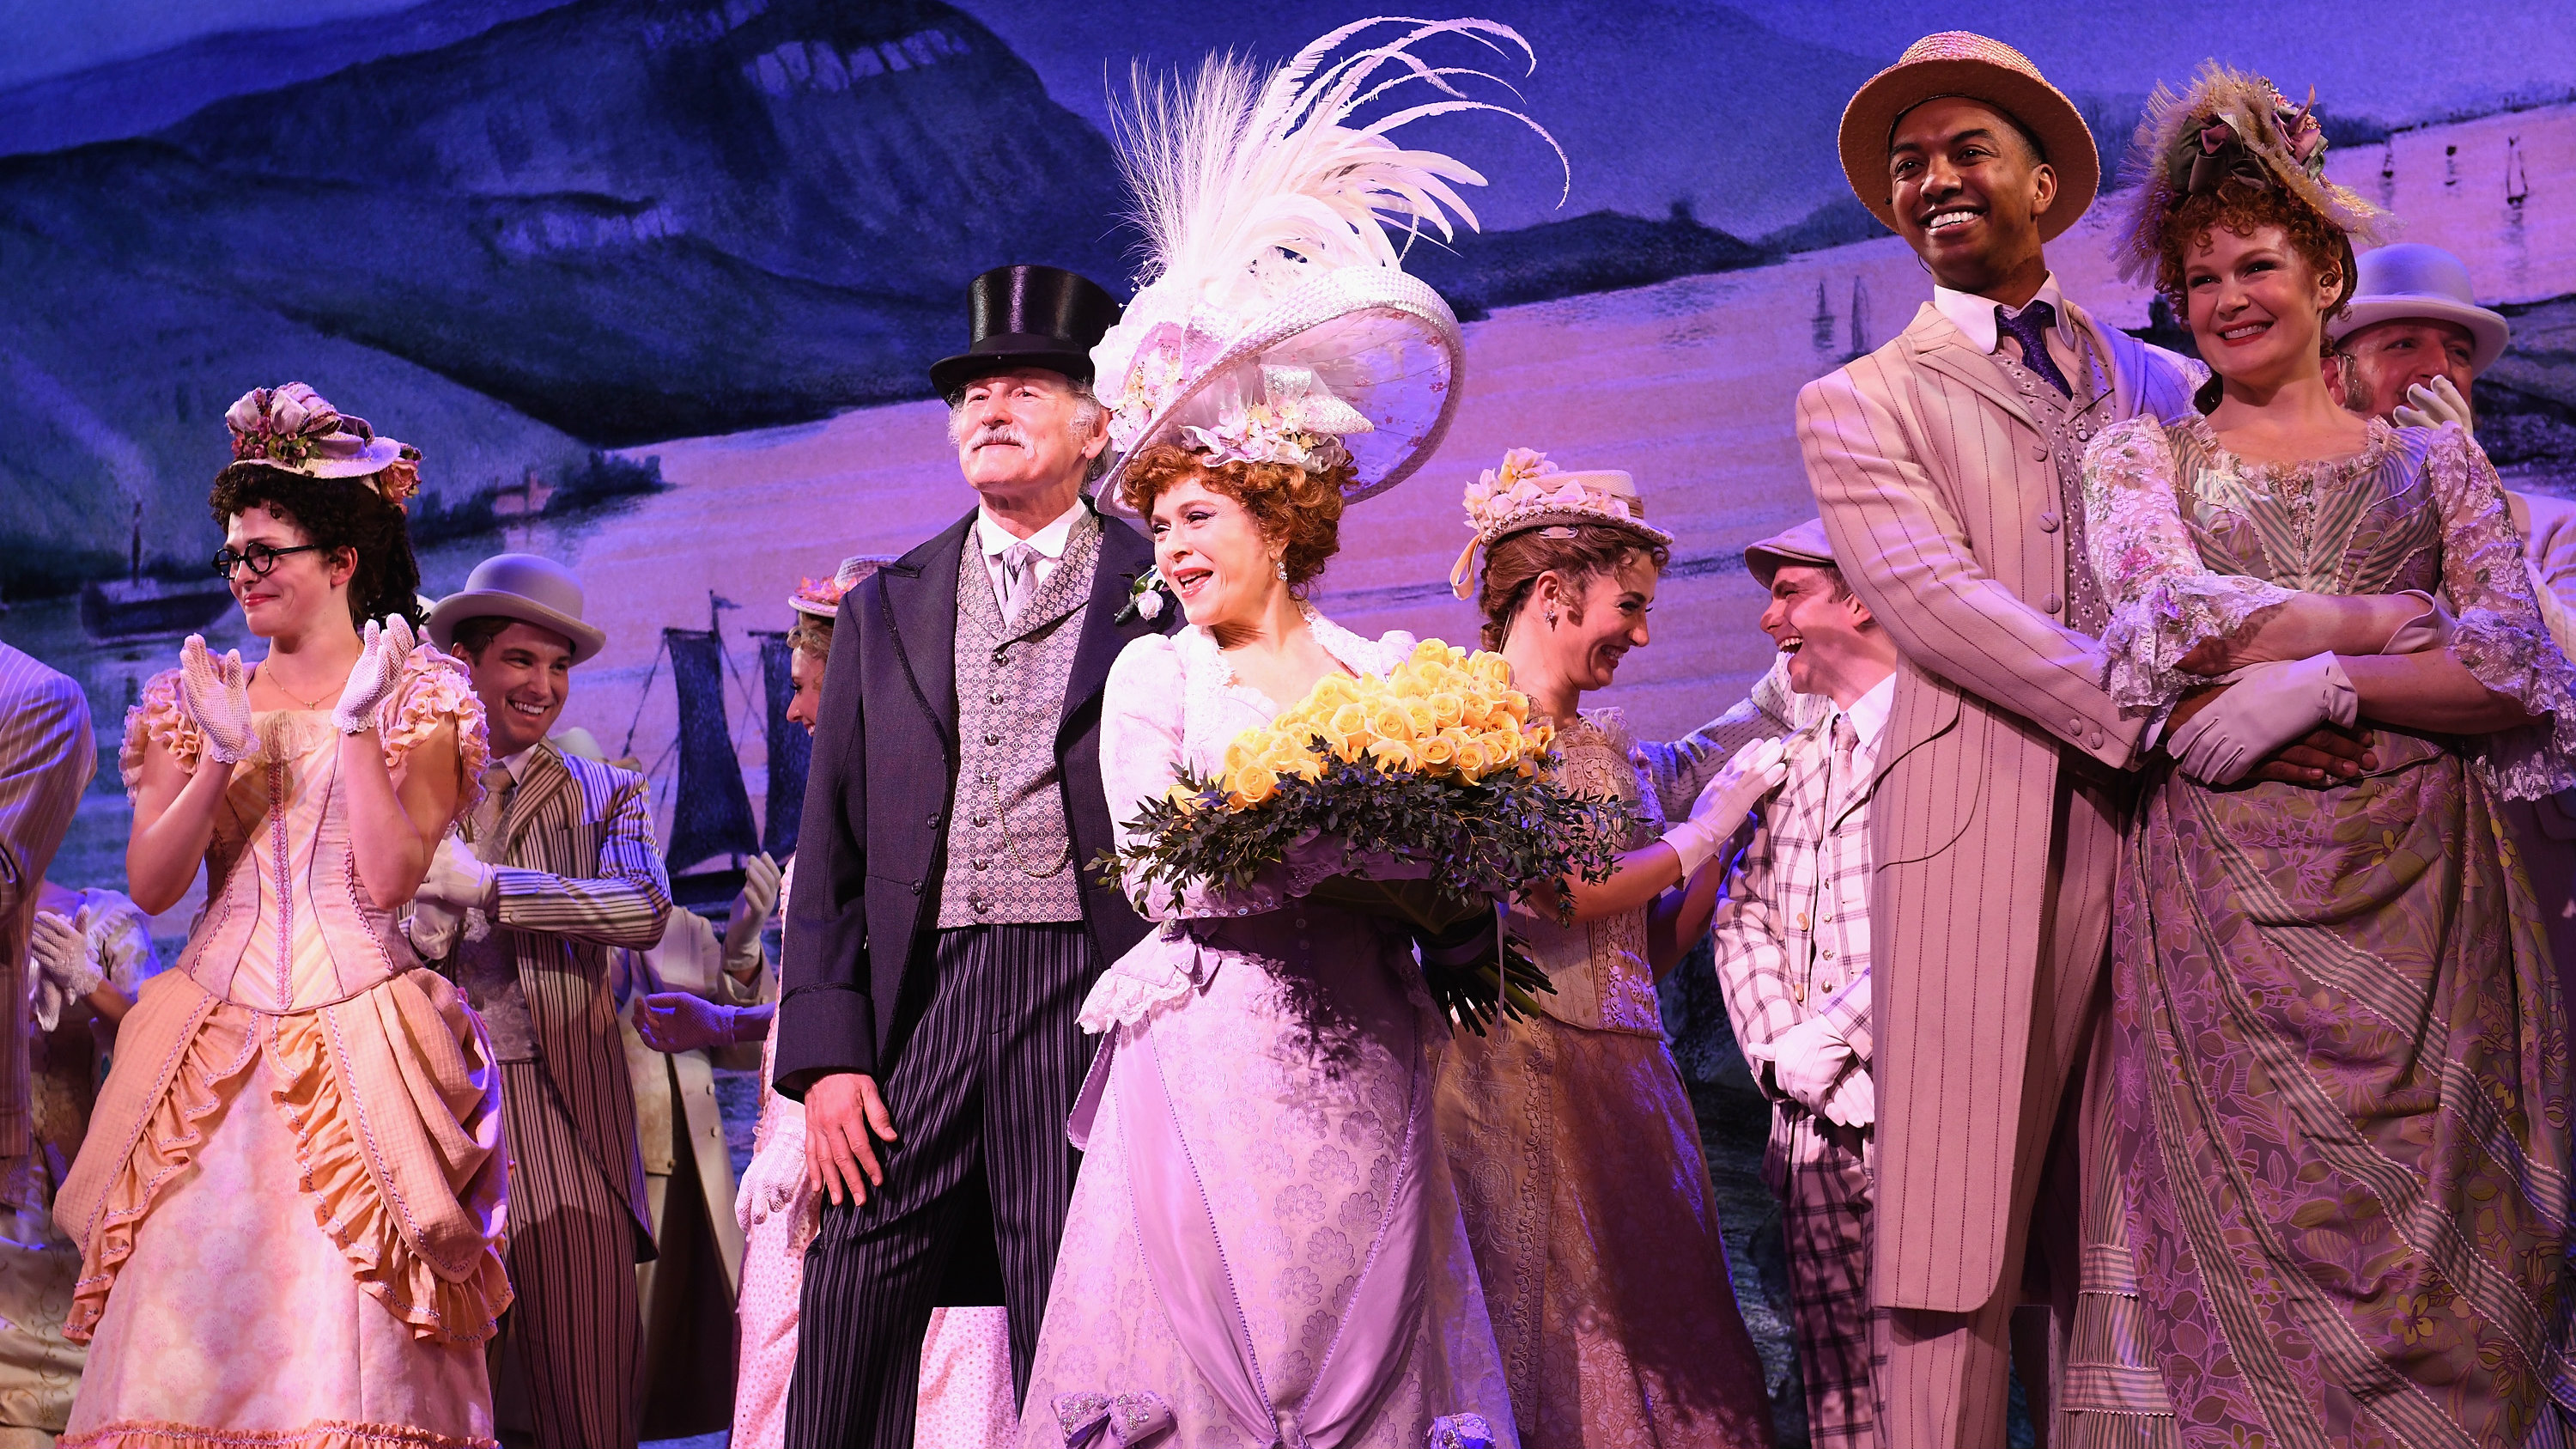 Opening night performance of 'Hello, Dolly!' in Detroit canceled - WDIV ClickOnDetroit